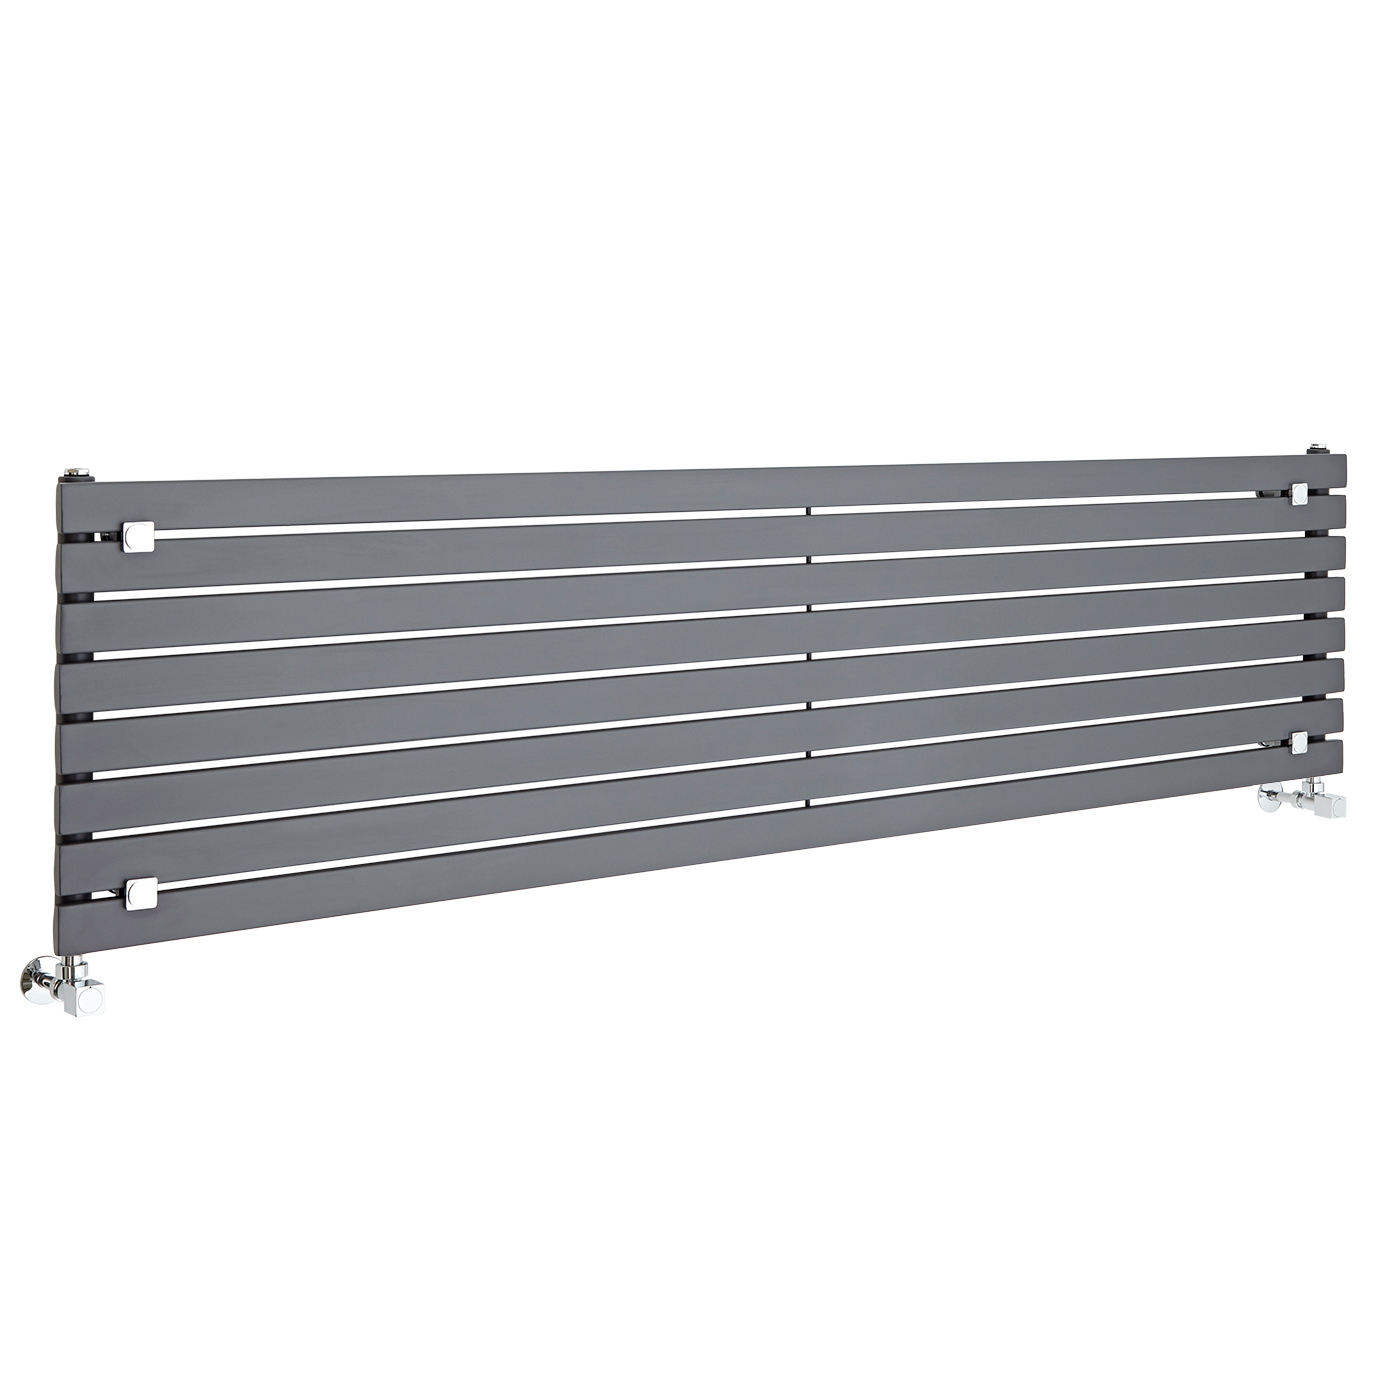 Radiateur Design Horizontal Anthracite Sloane 47,2cm x 178cm x 5,4cm 1145 Watts